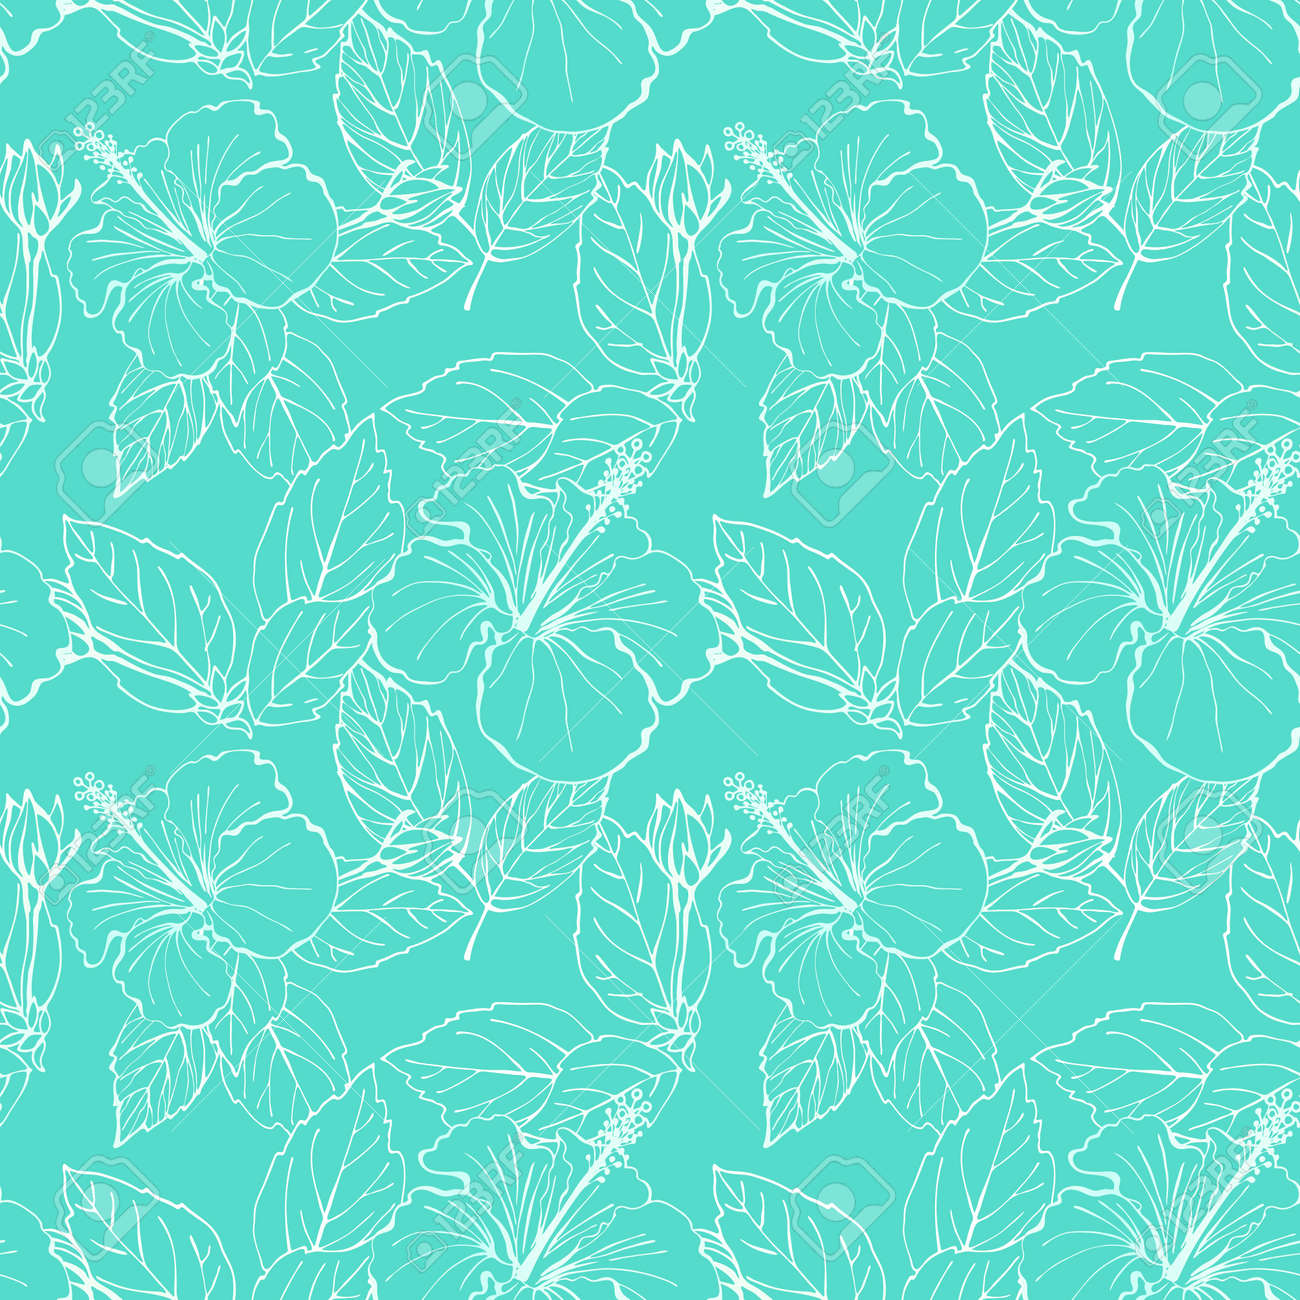 Hibiscus flower seamless pattern. Hand drawn sketch style. Line art. Mallow Chinese Rose. Herbal tea. Hawaii. Tropical background for paper, textile, wrapping and wallpaper. - 169116812